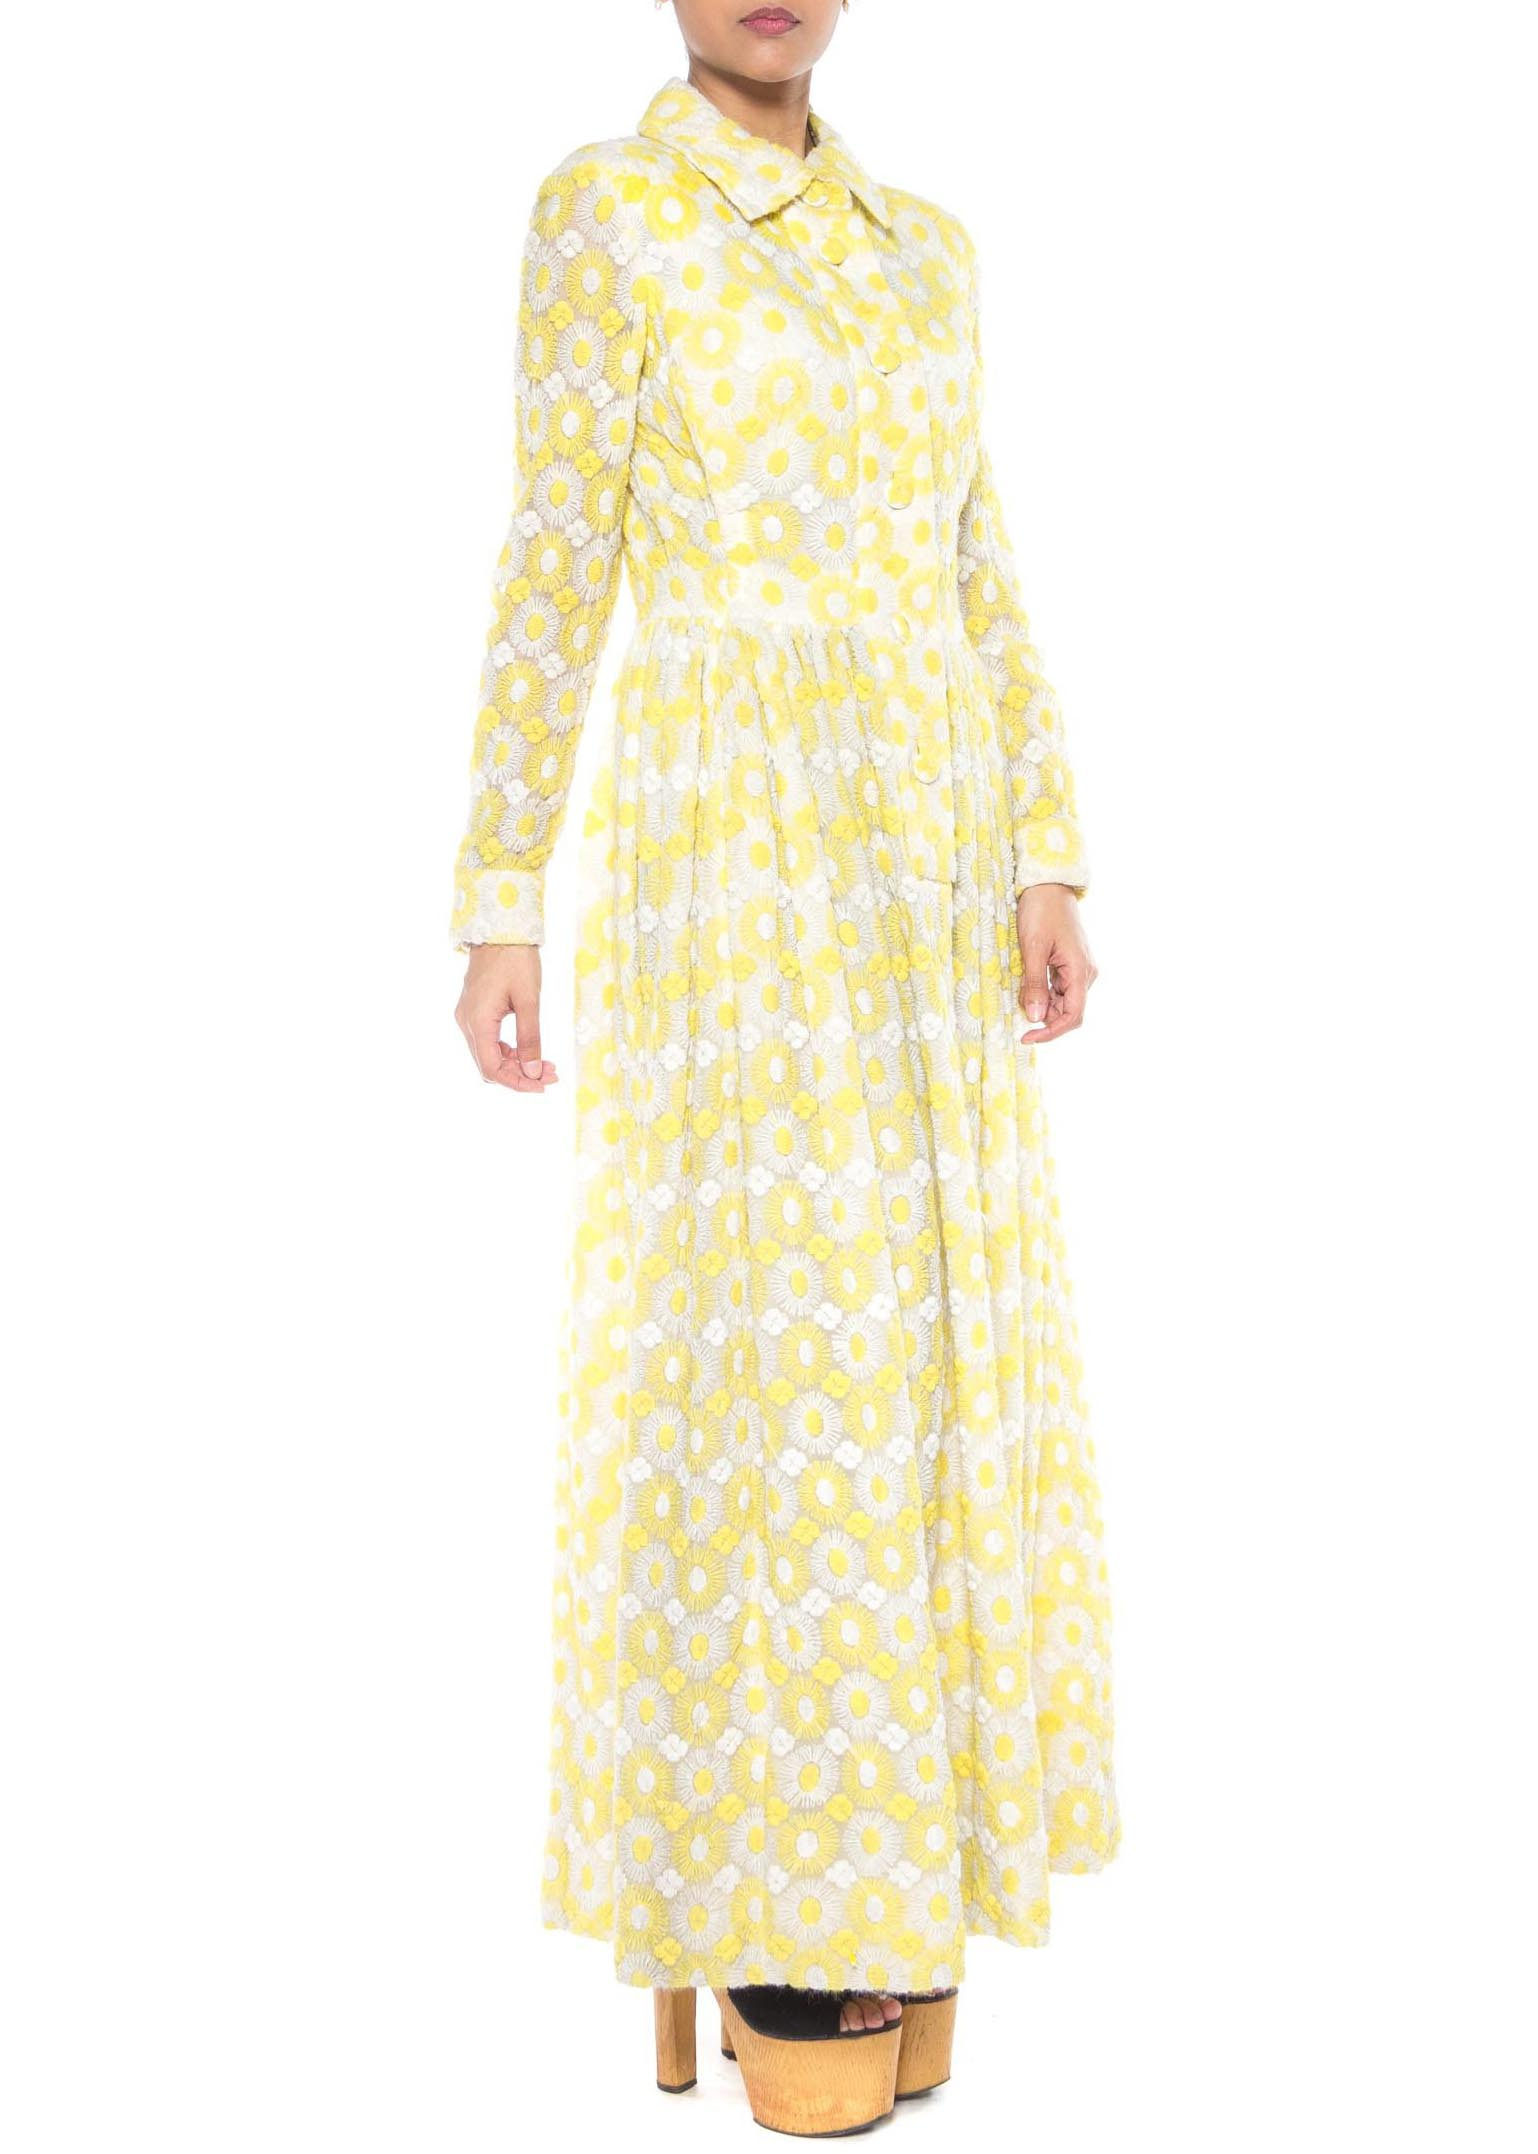 1960s Yellow and White Daisy Embroidery Maxi Dress from MORPHEW CONCEPT